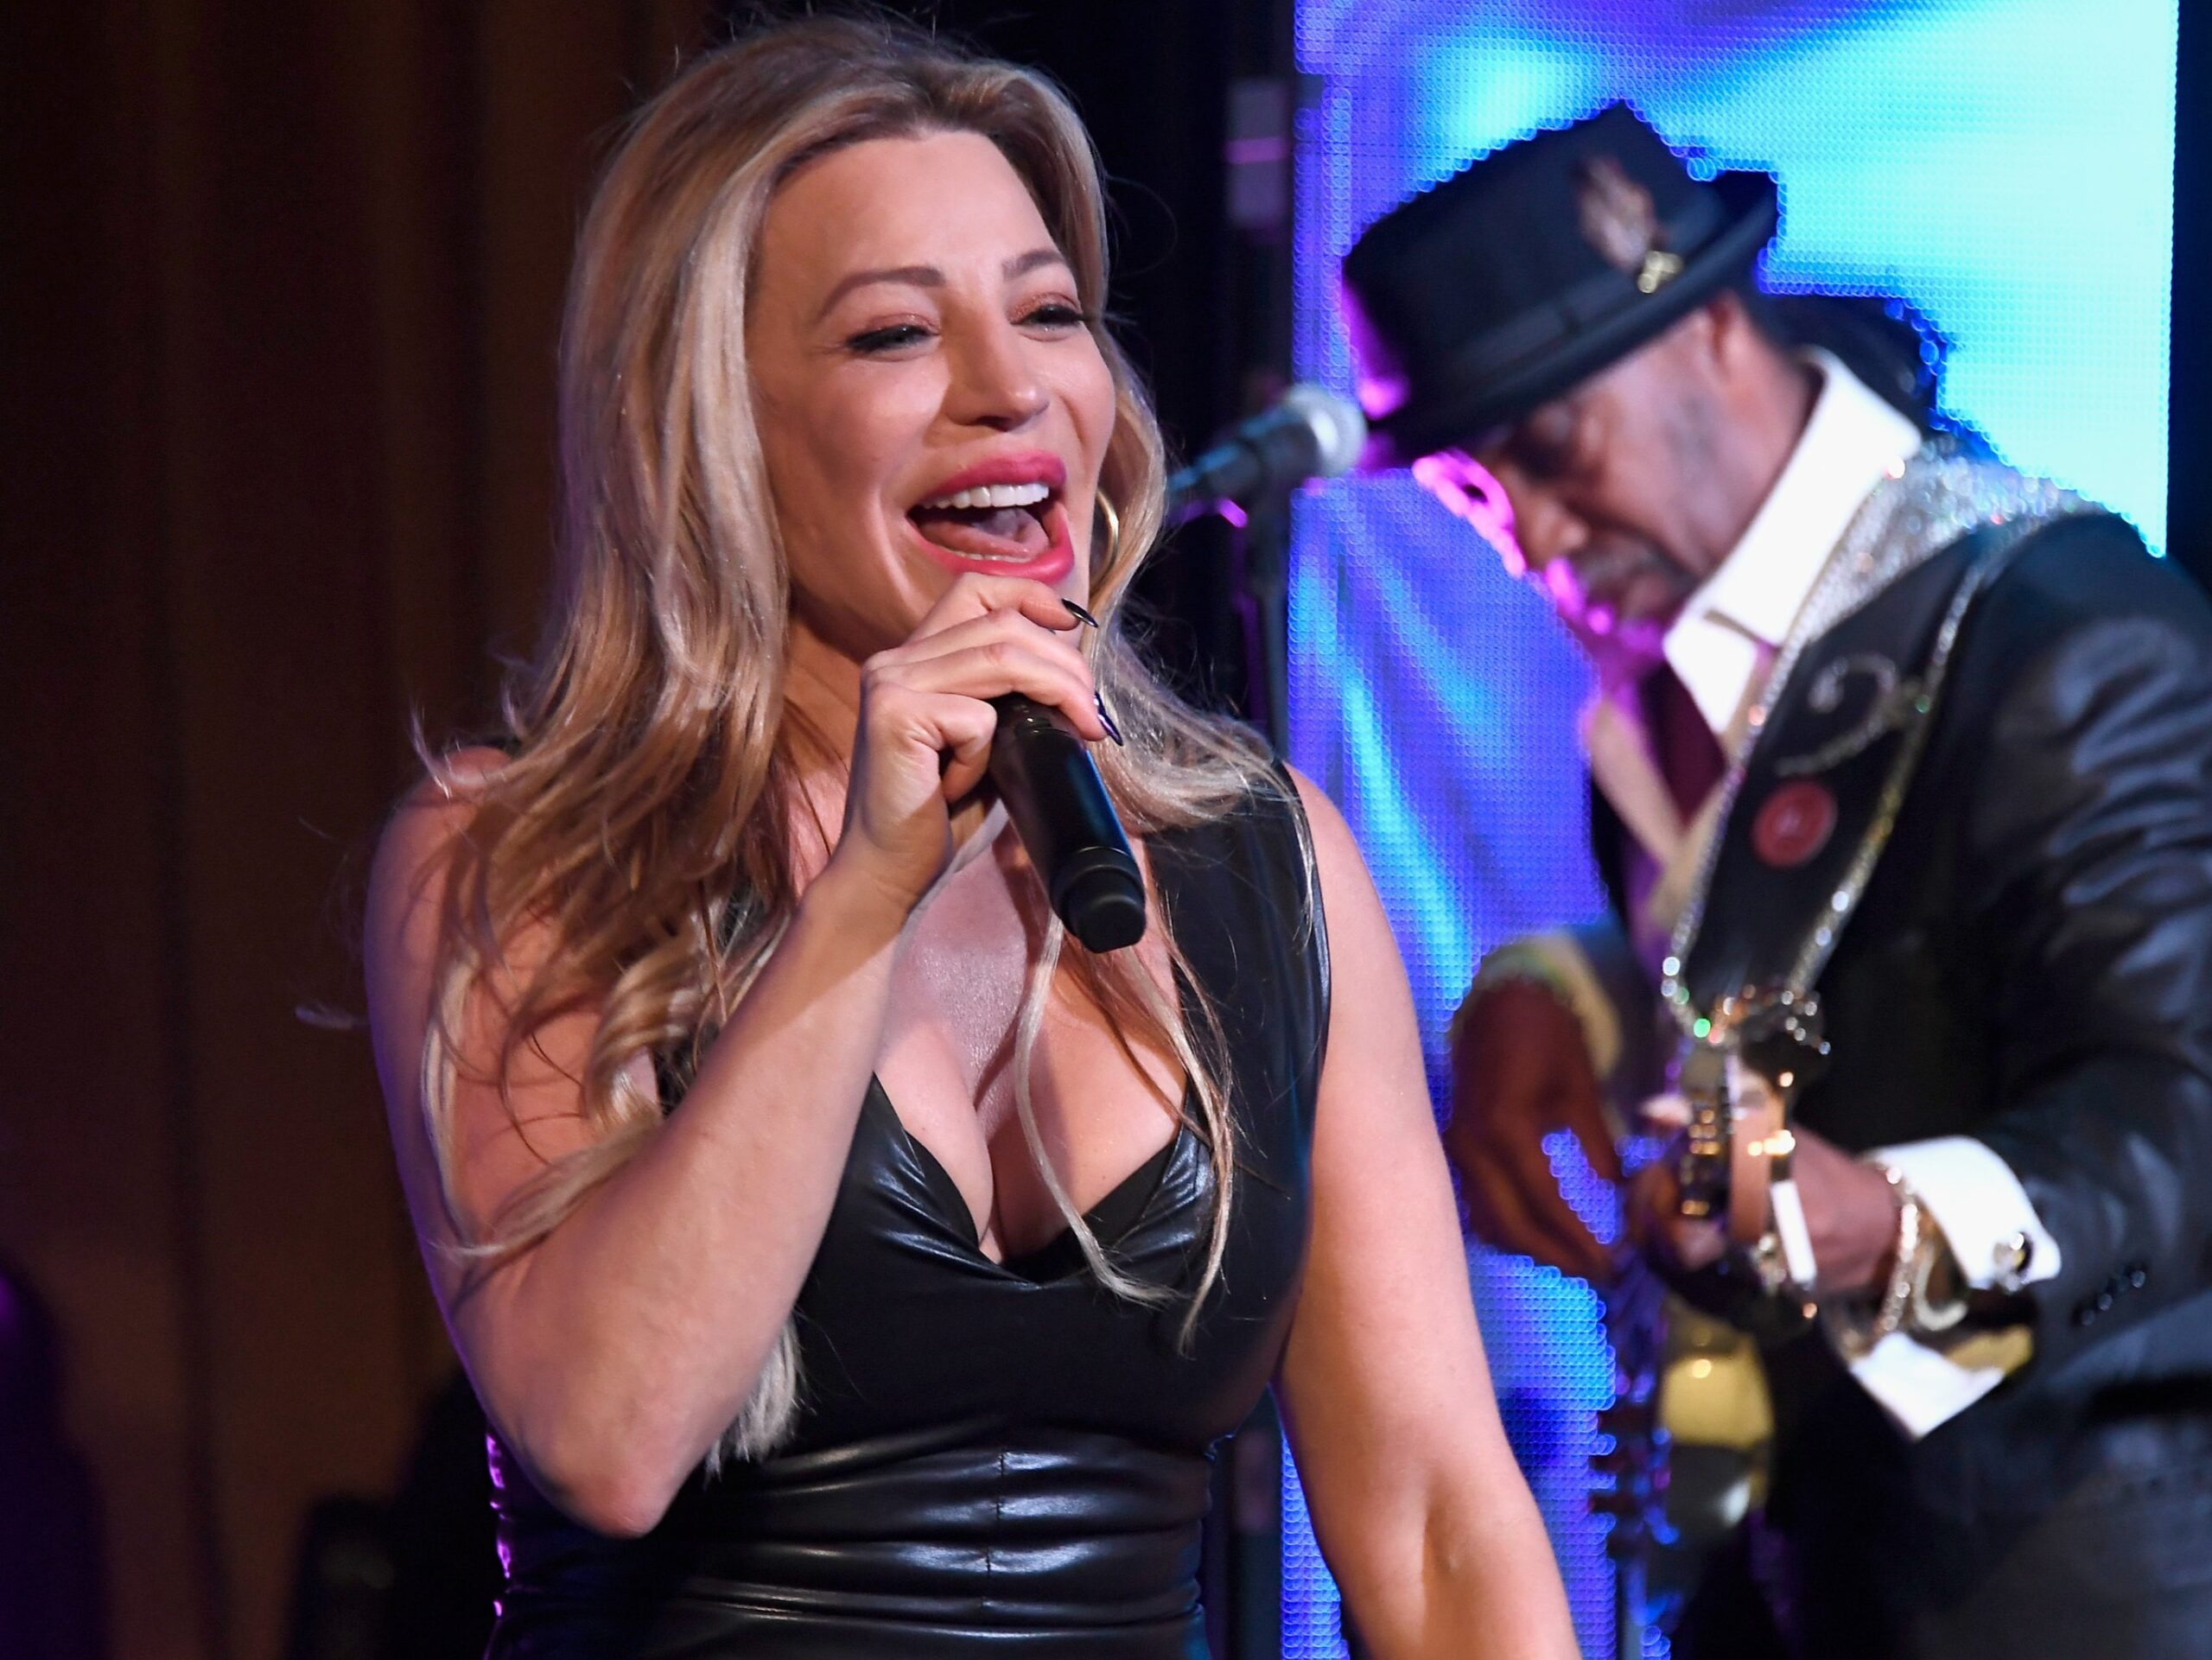 Taylor Dayne defends Mar-a-Lago New Year's Eve performance: 'I try to stay non-political'